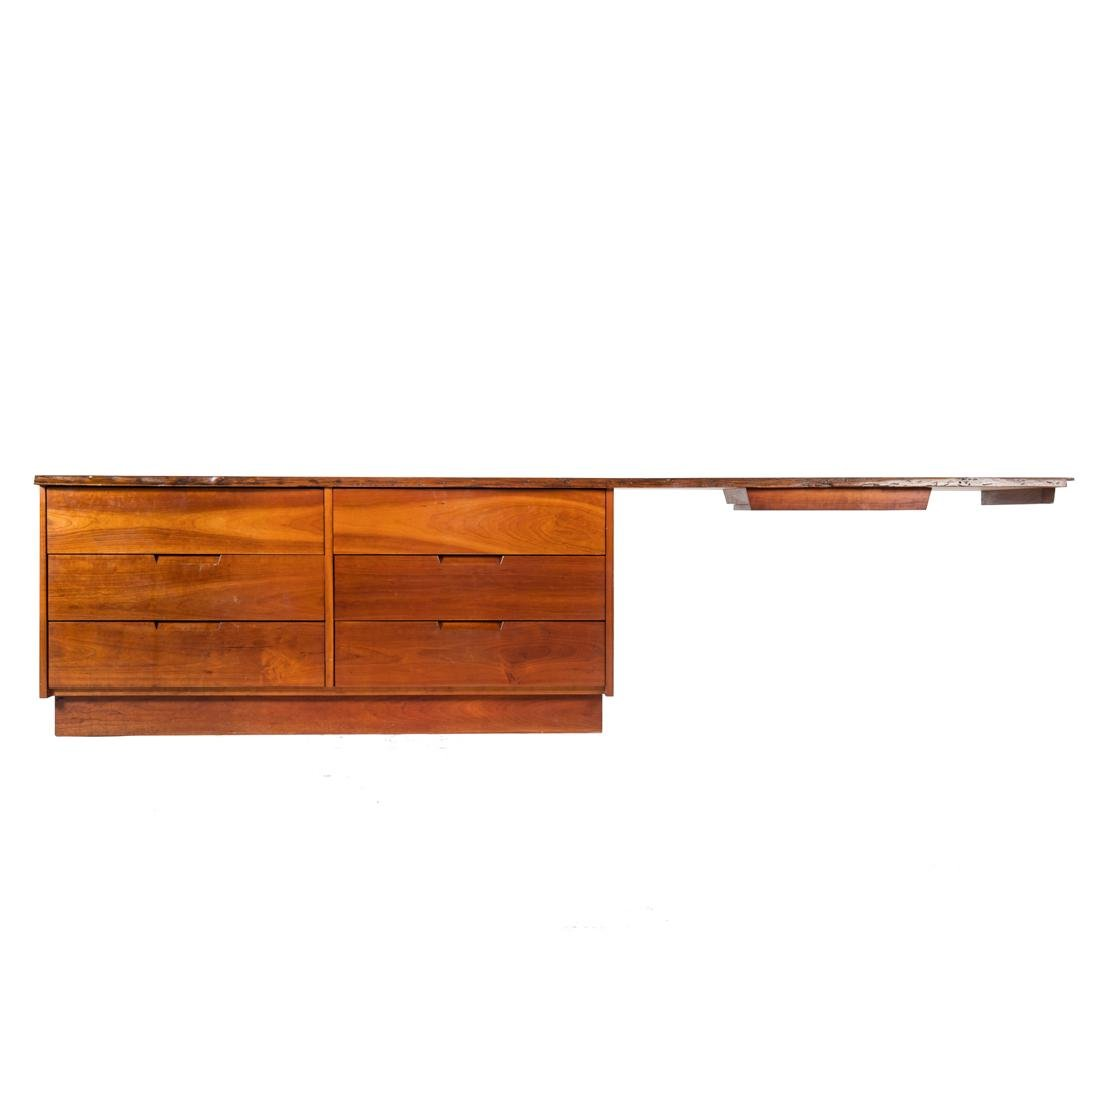 George Nakashima Custom Double Dresser / Desk - 5